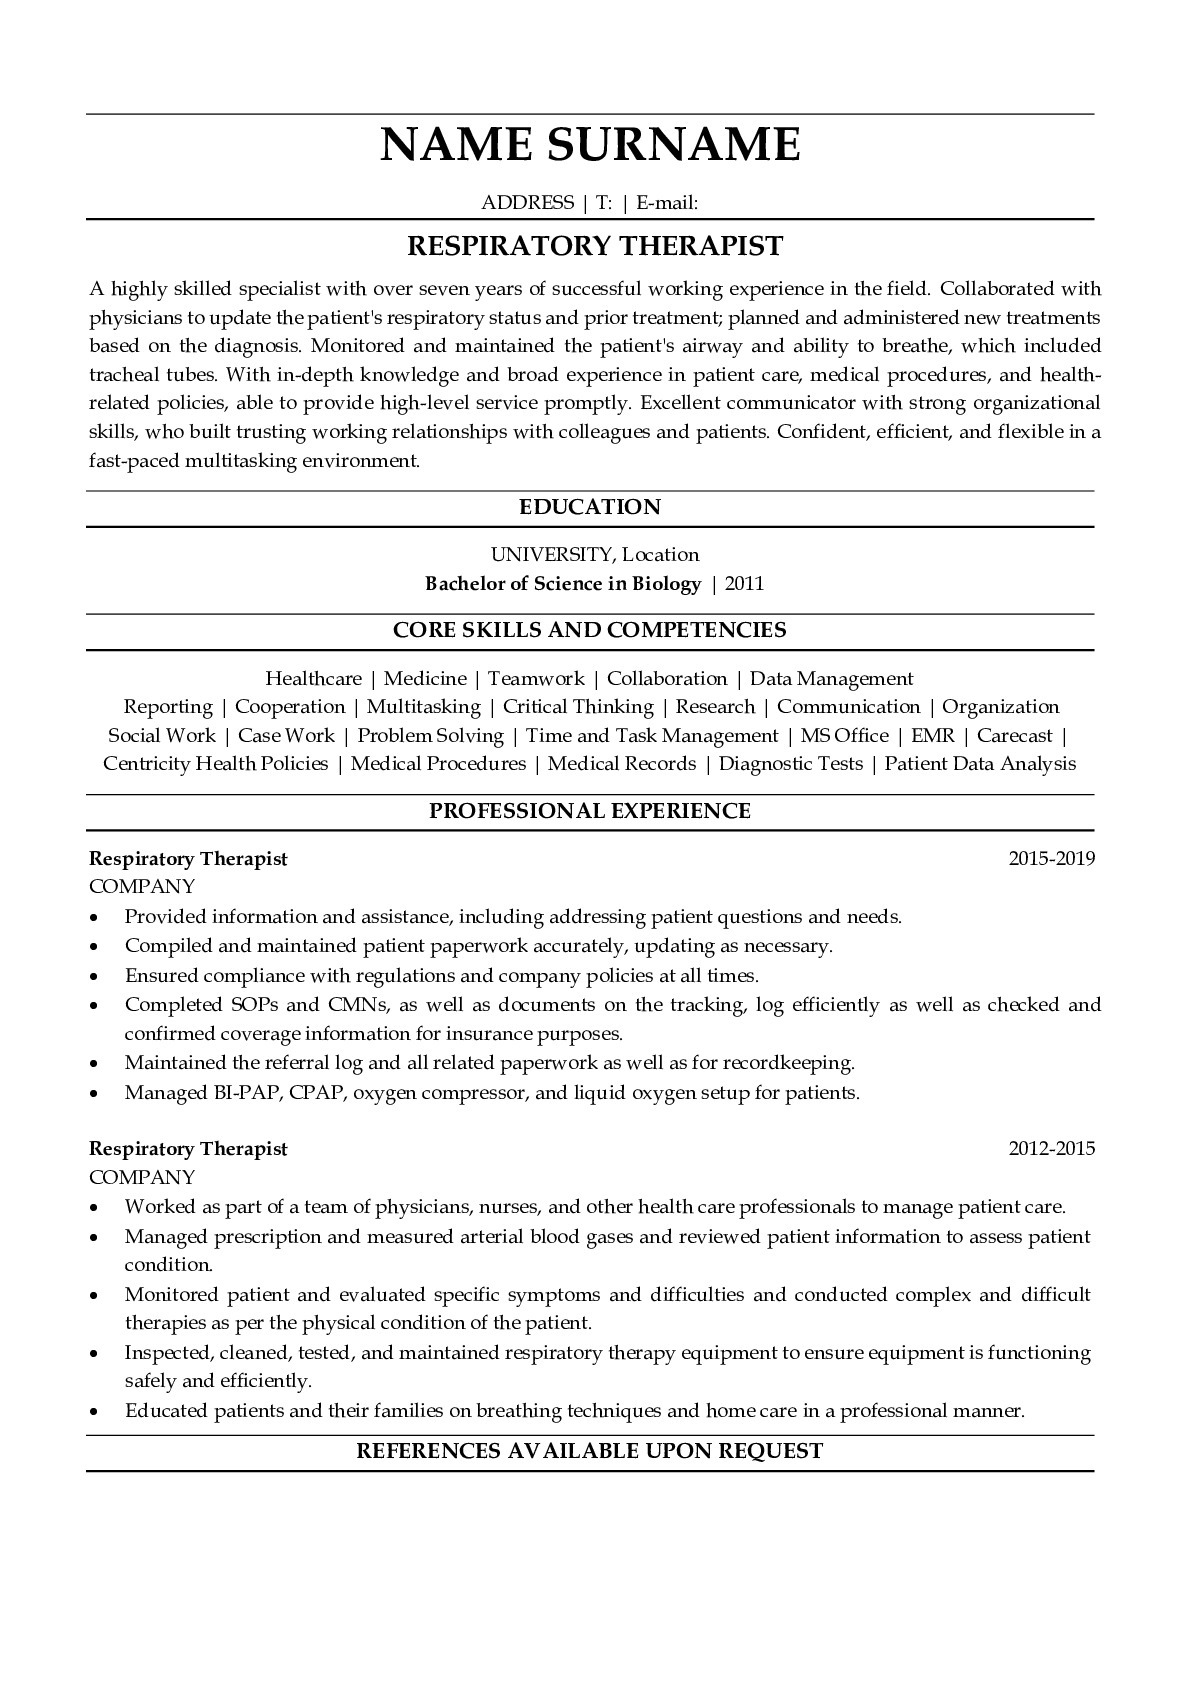 Resume Example for Respiratory Therapist